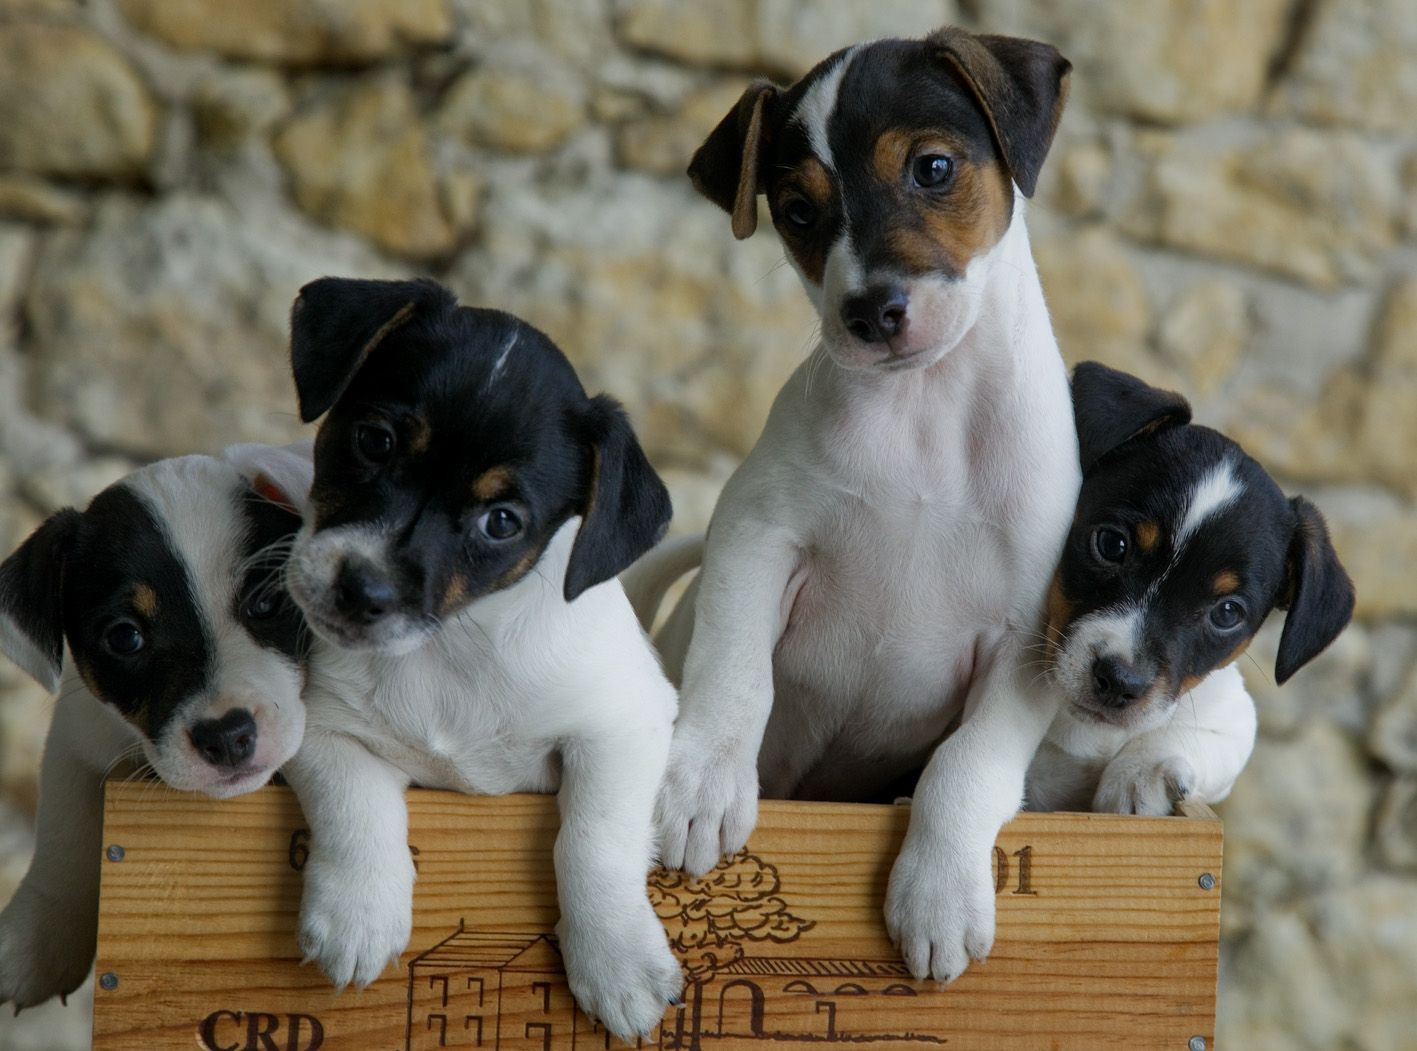 Dogs:  Jack Russell terrier puppies